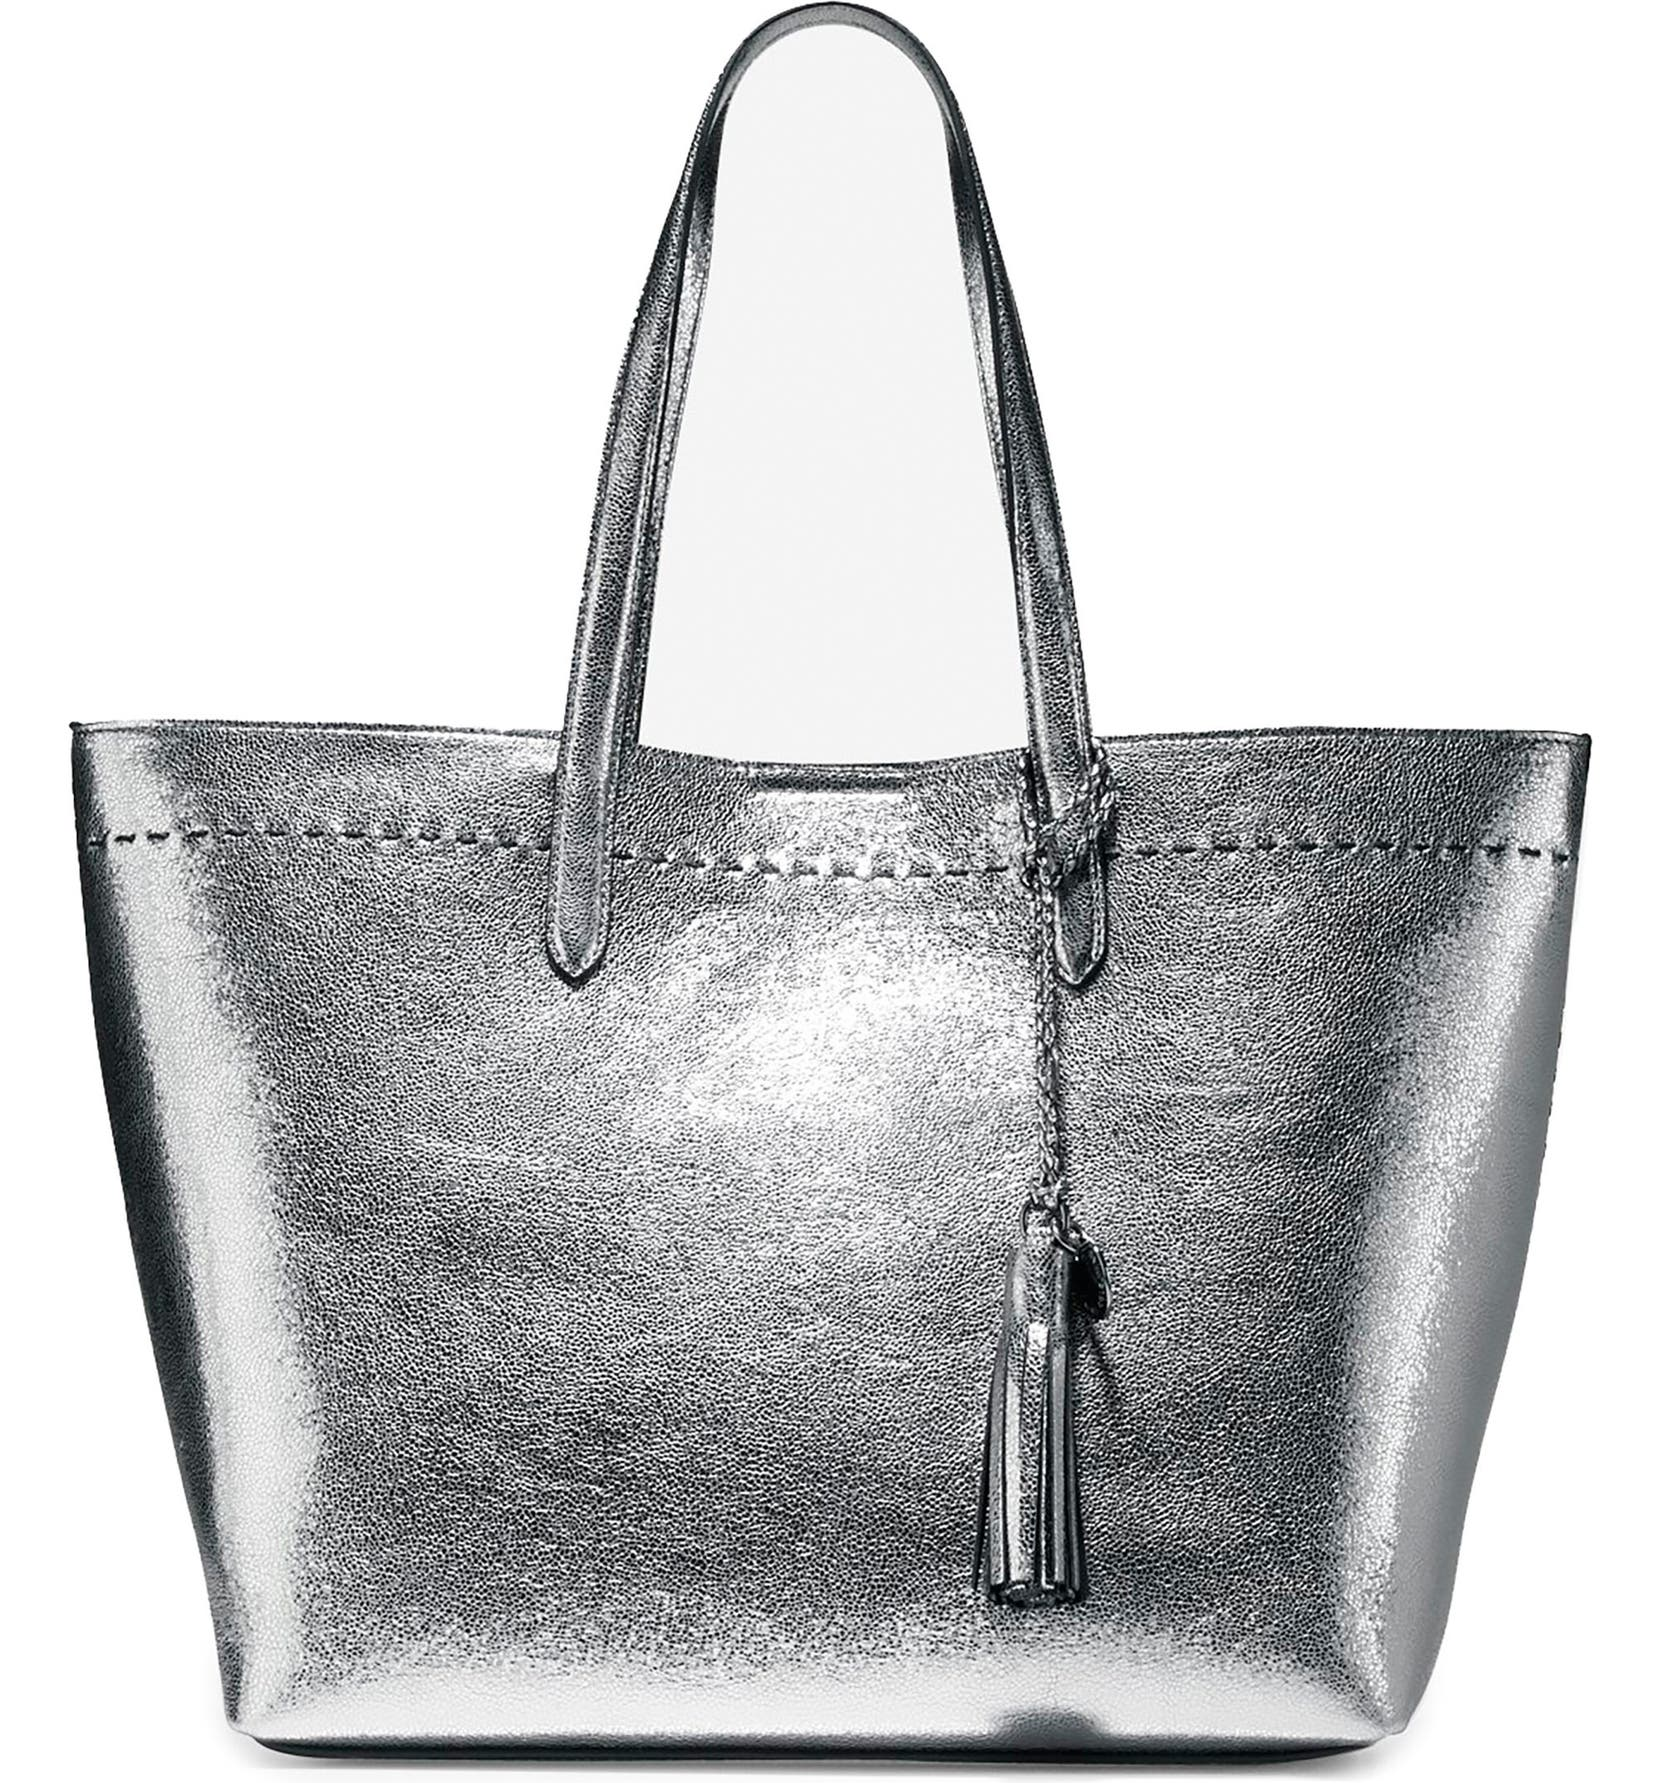 7164952eb7 Cole Haan Payson Metallic Leather Tote   Nordstrom